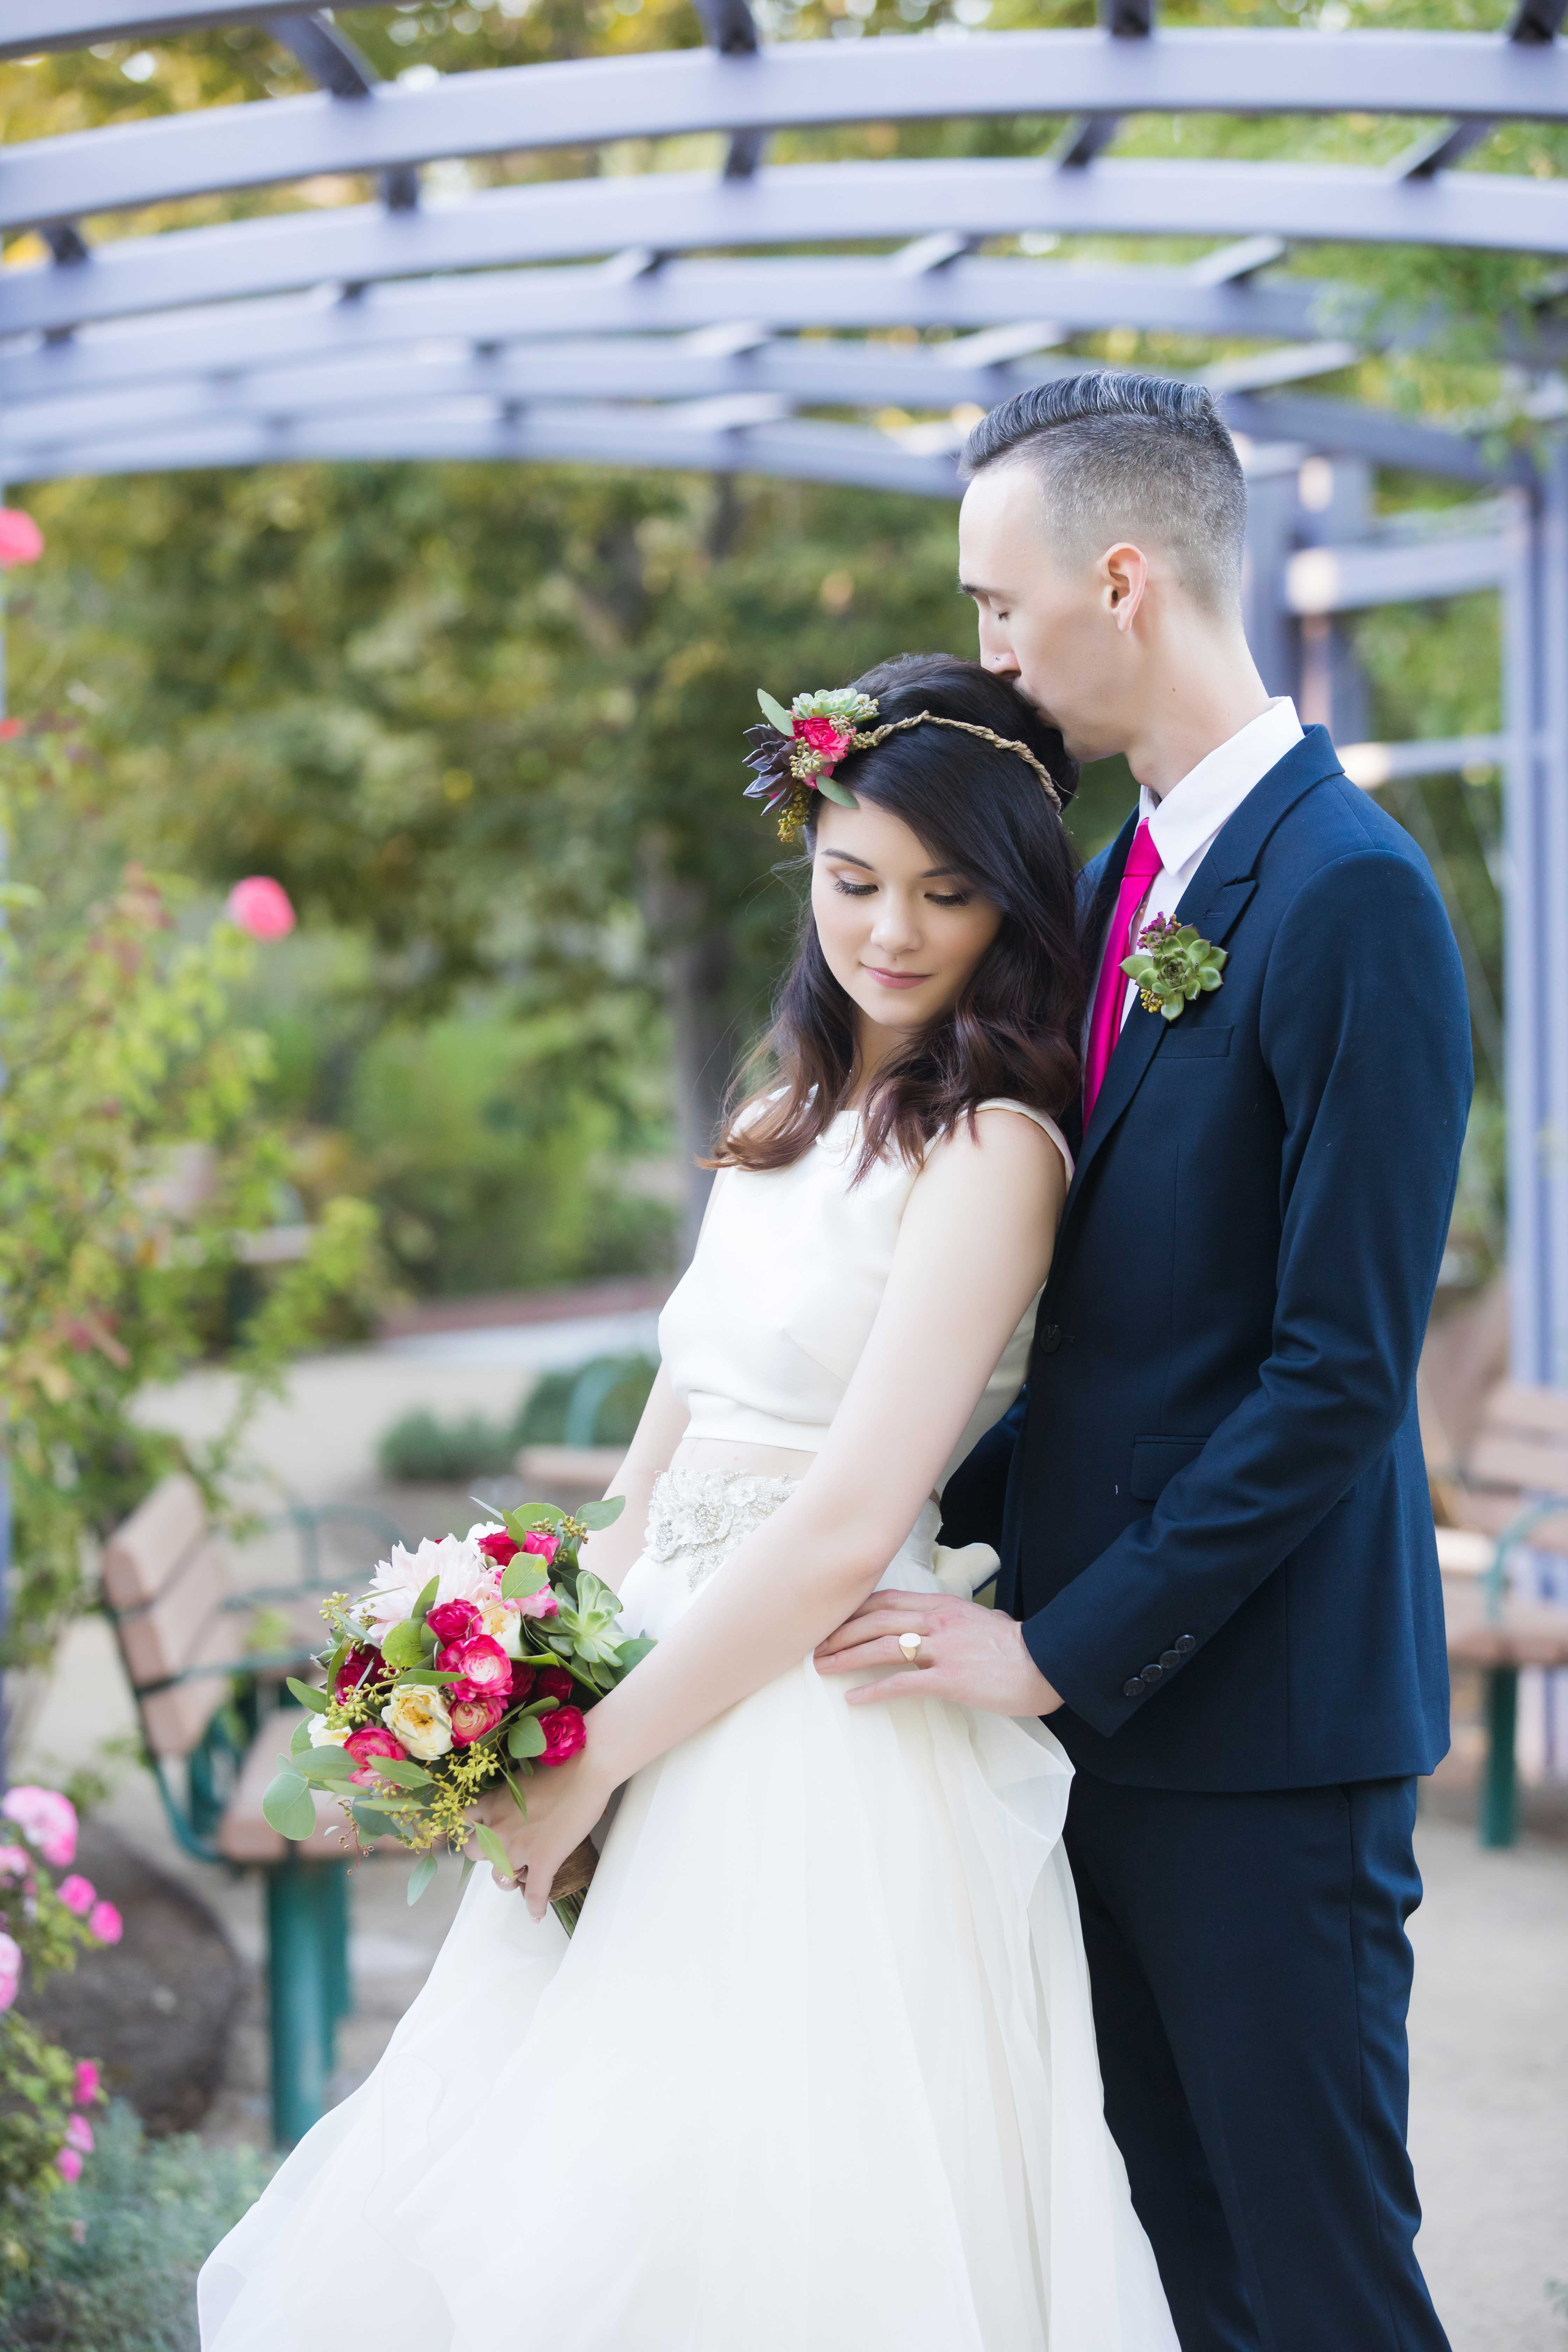 Top 15 Mistakes Made When Getting Married In Vegas From Las Vegas